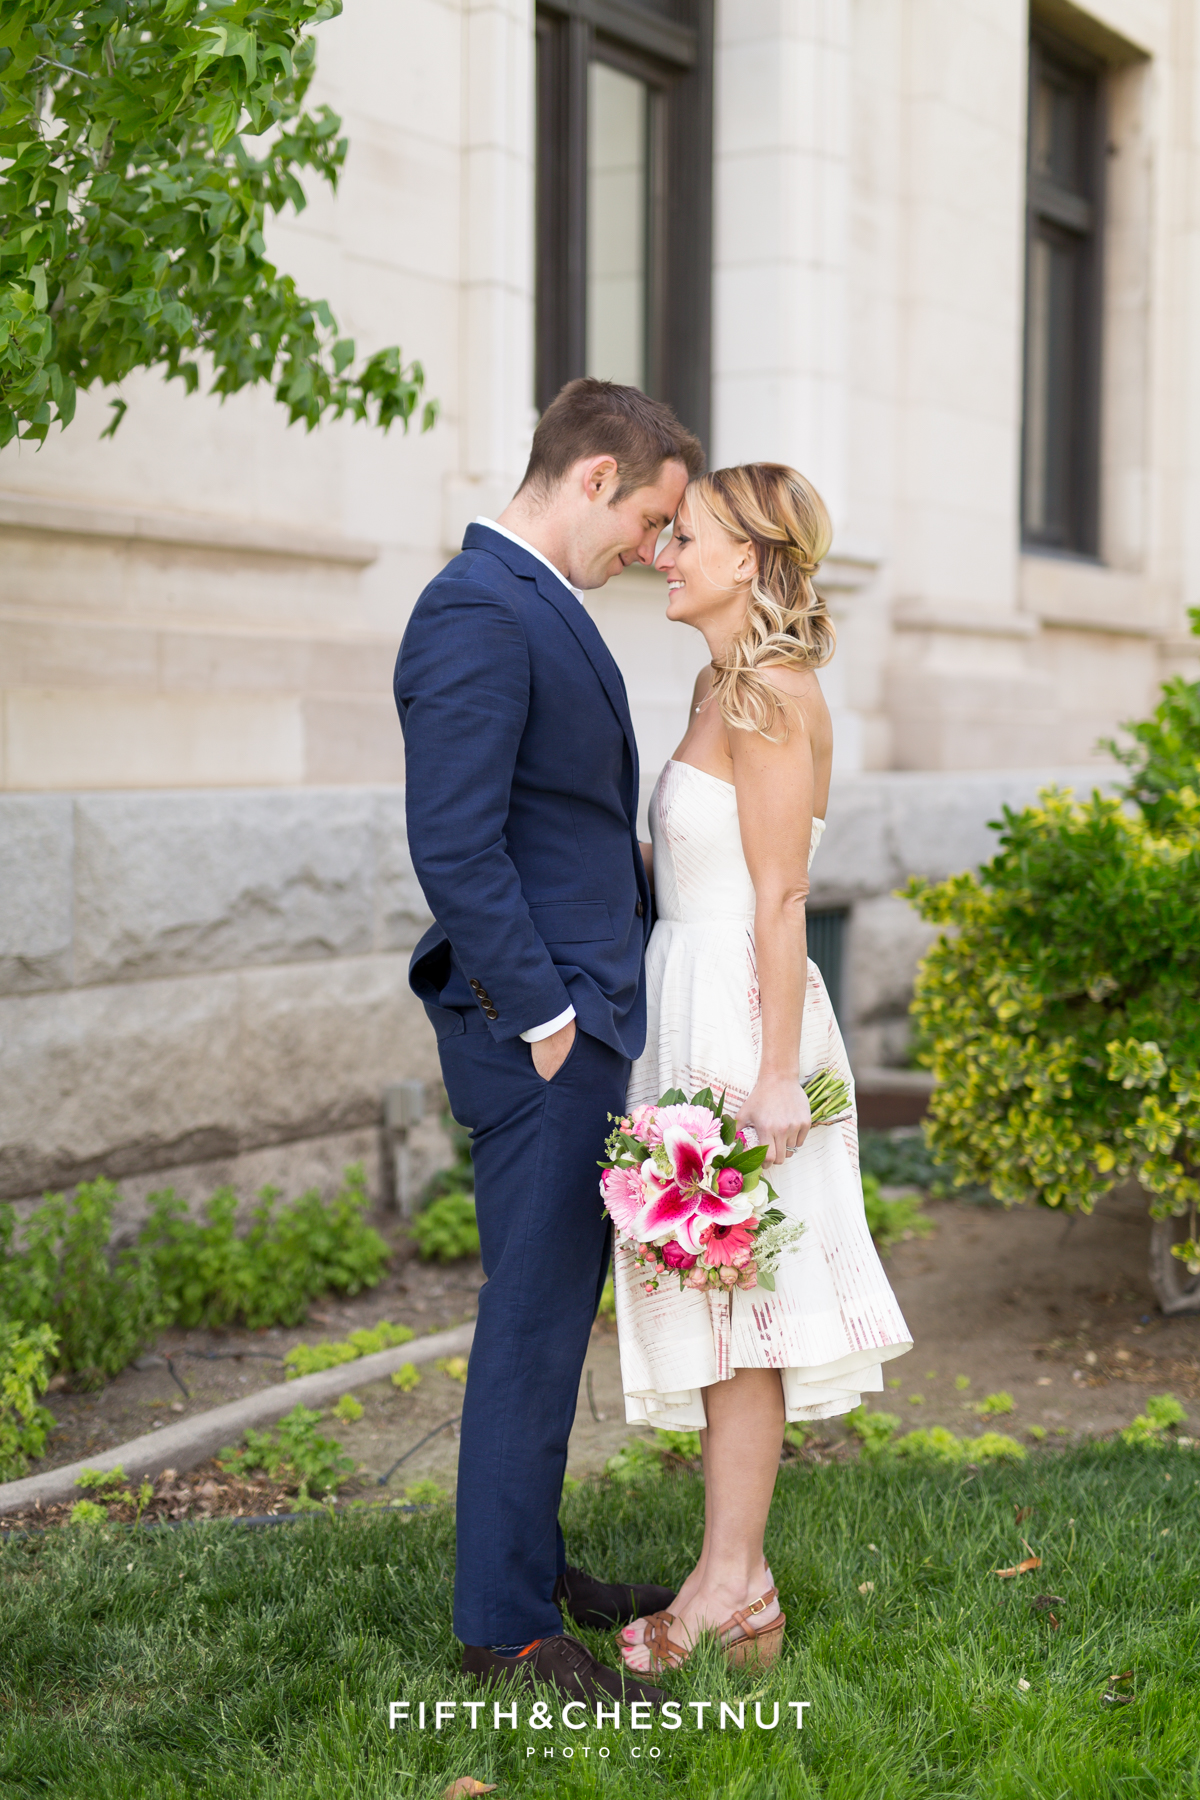 Romantic Bride and groom portrait on their wedding day in Downtown Reno with Reno Elopement Photographer